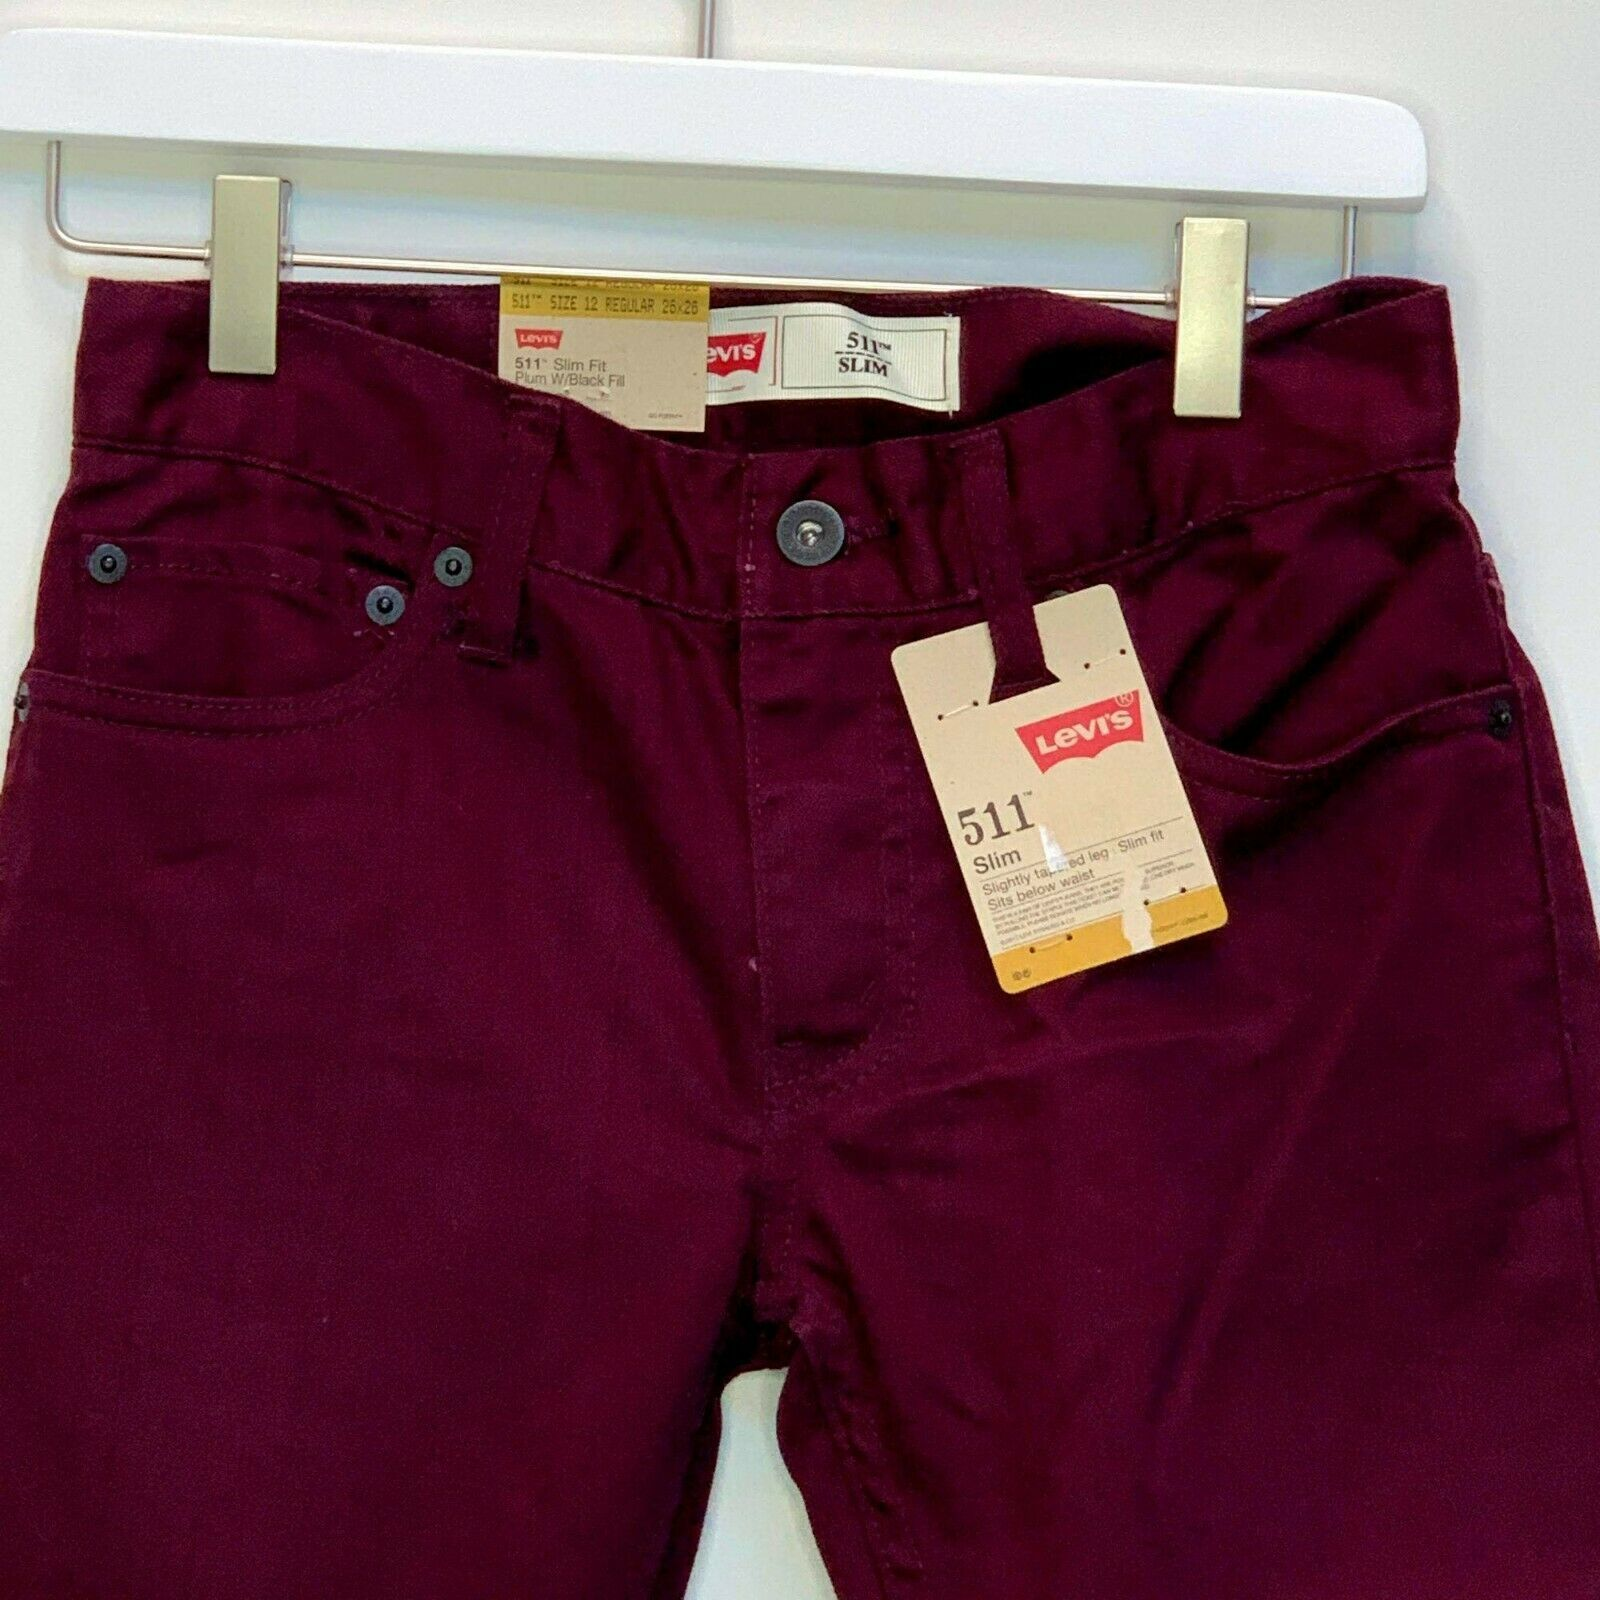 Primary image for Levi's 511 Boys Slim Fit Purple Jeans Size 12